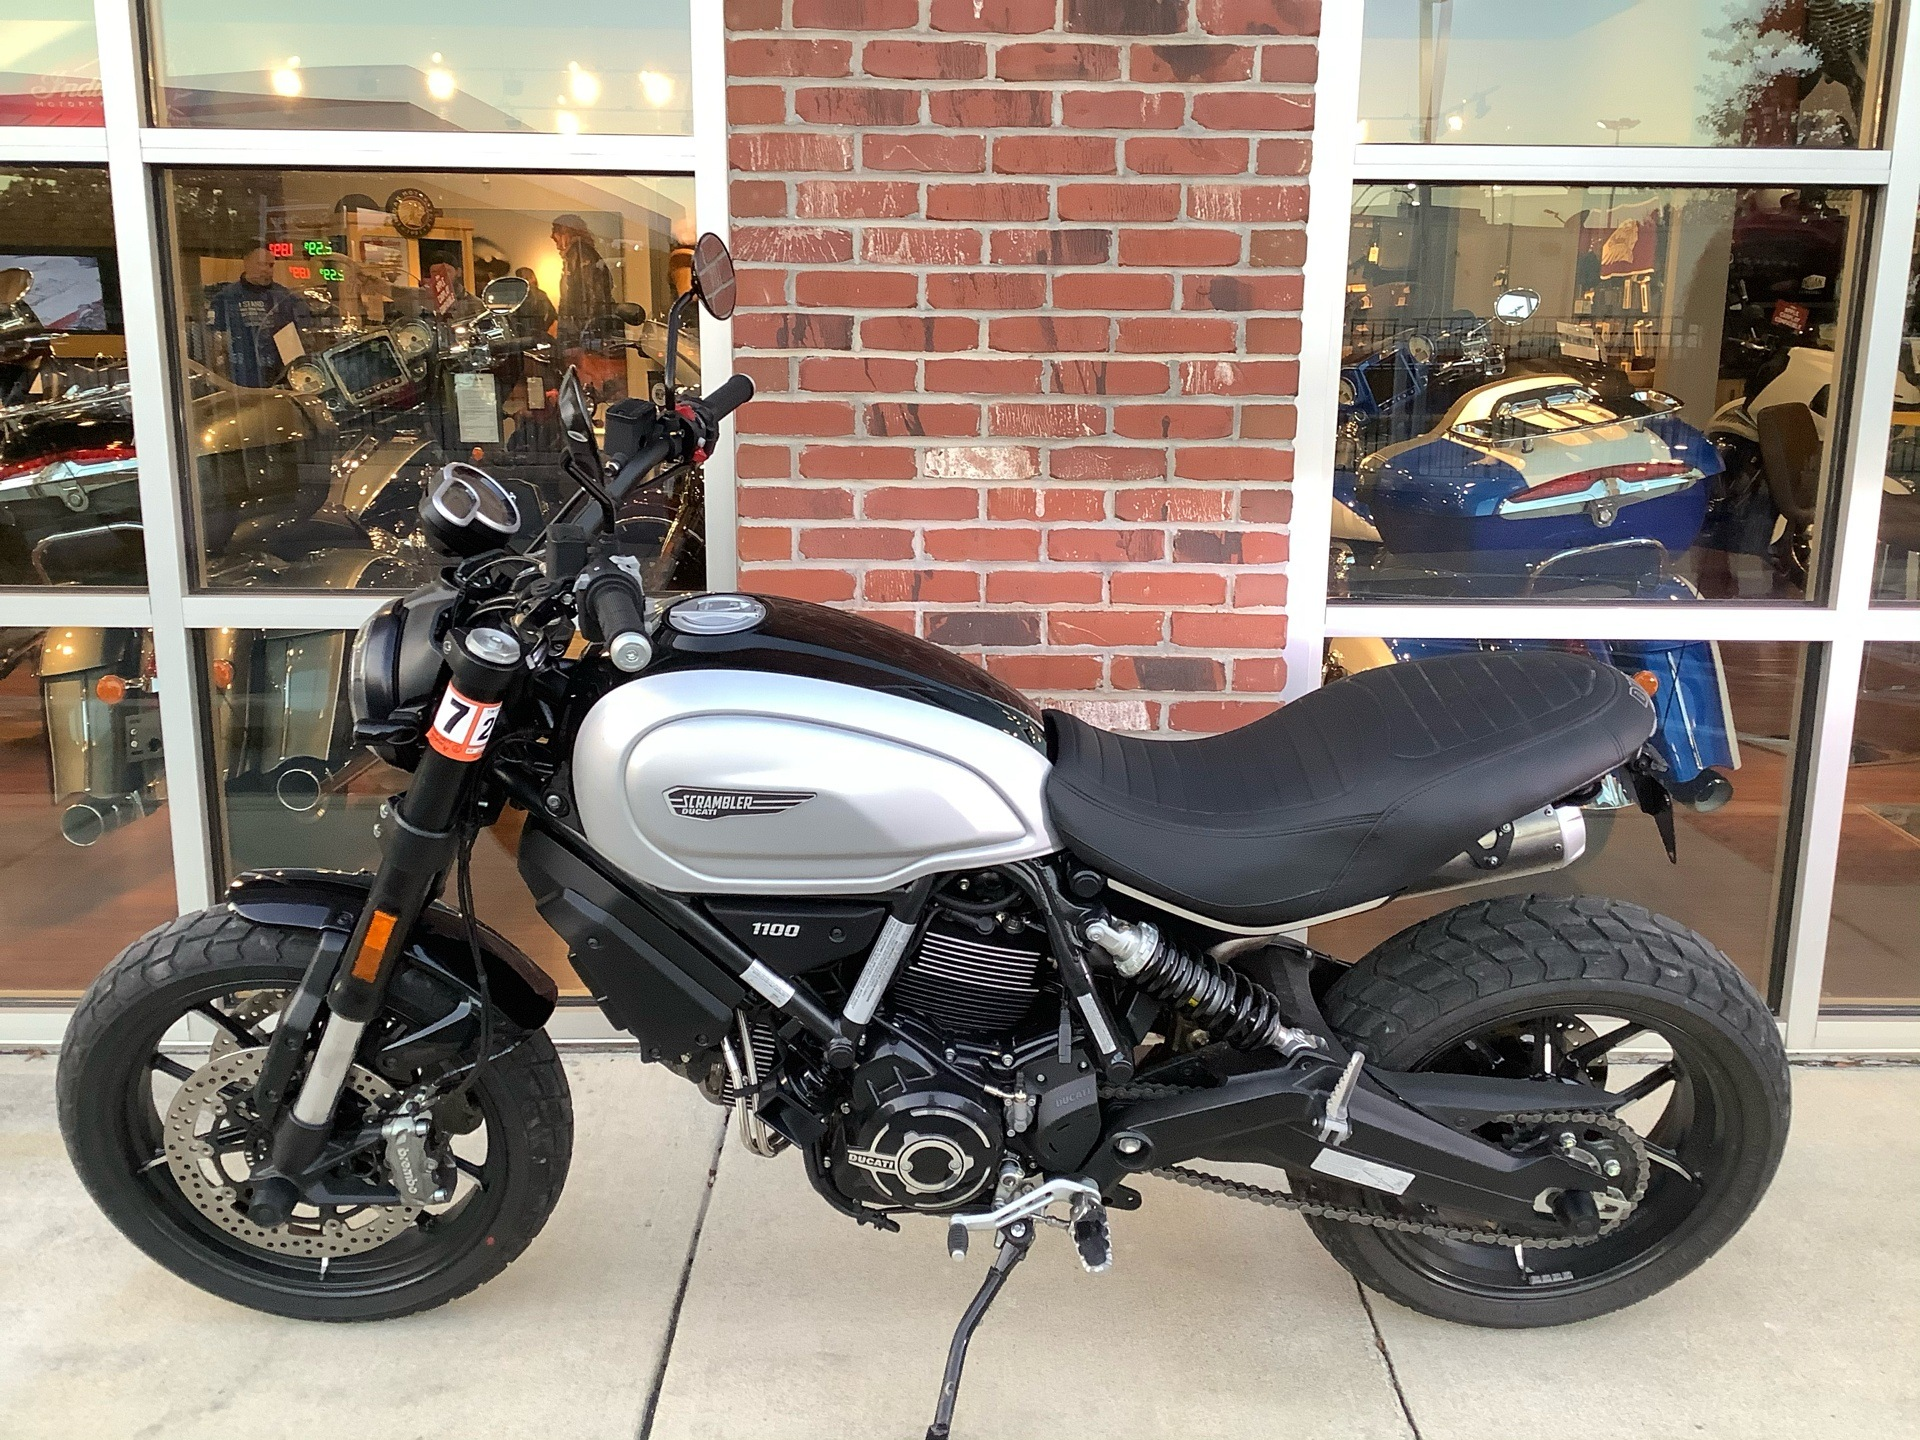 2021 Ducati Scrambler 1100 PRO in Newport News, Virginia - Photo 2